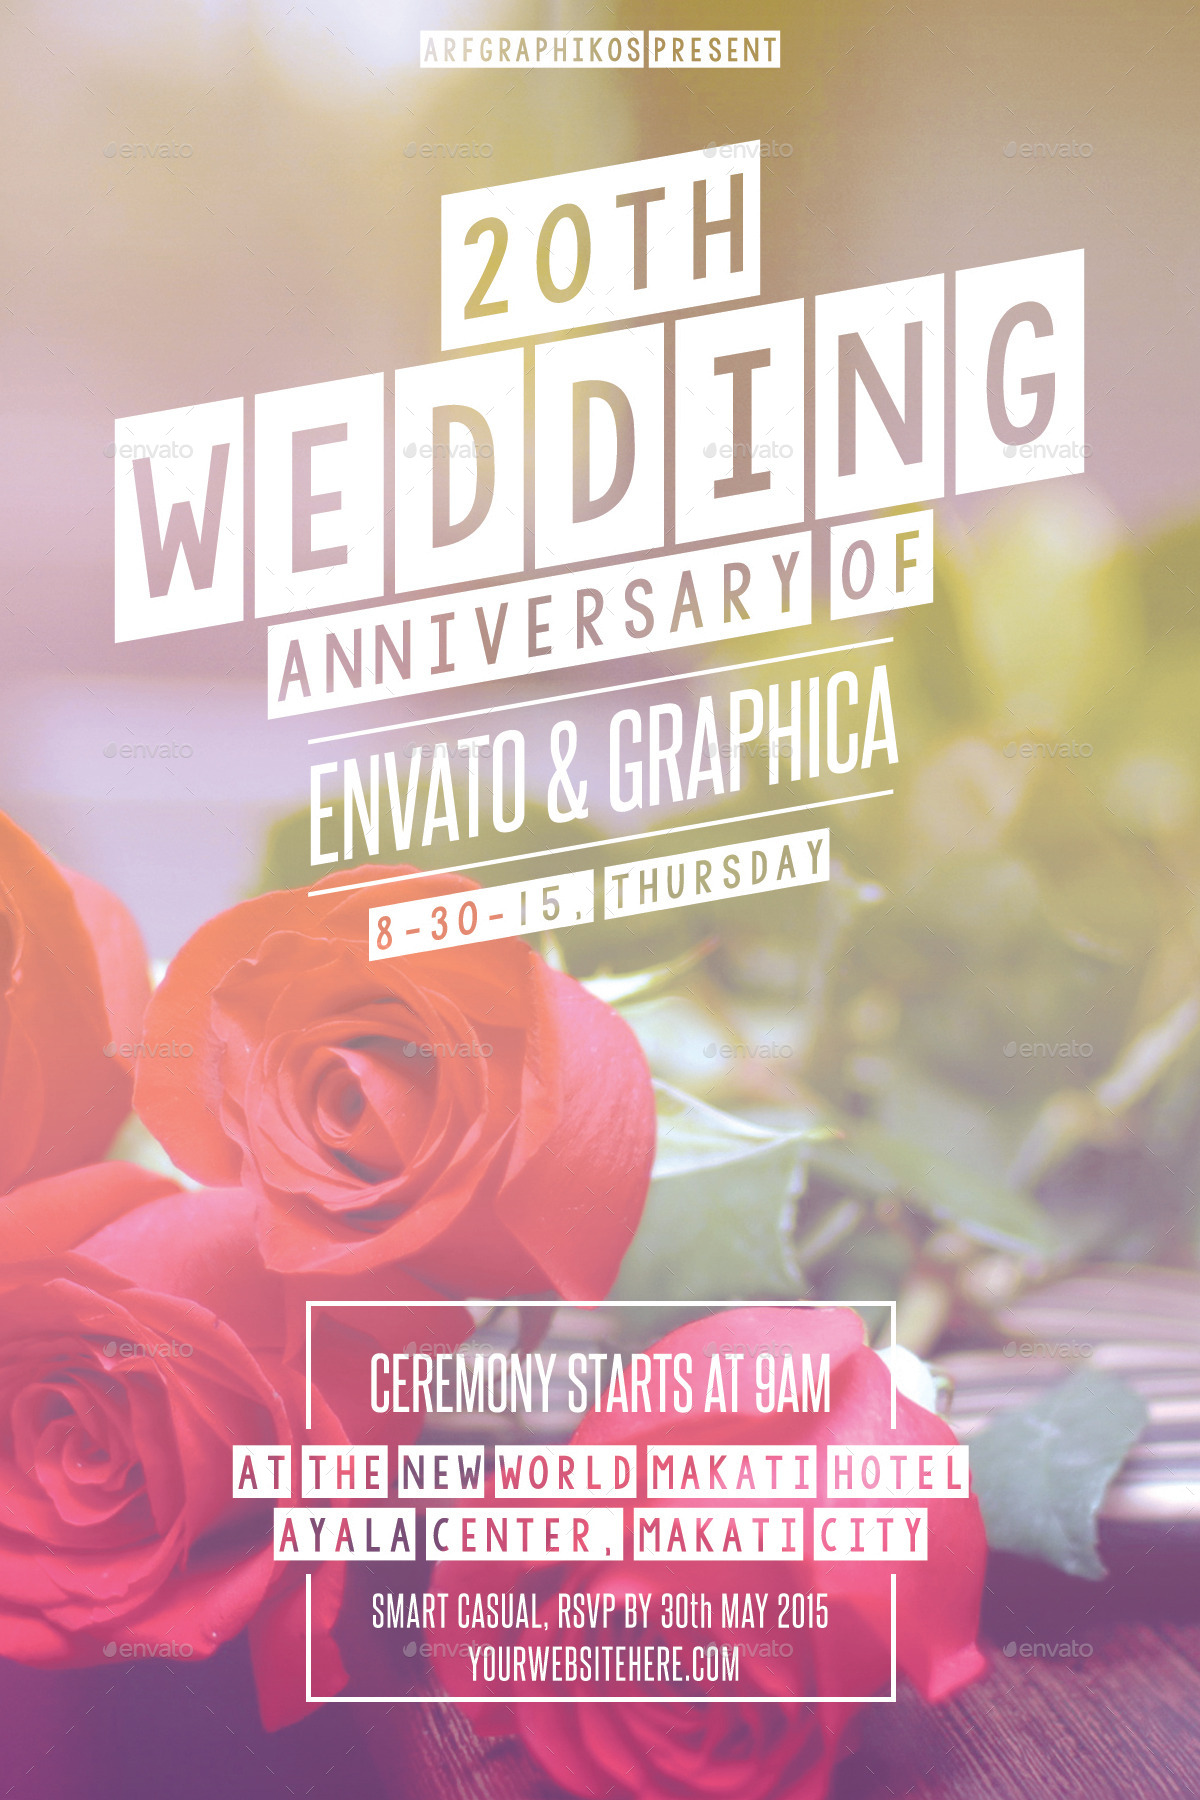 Wedding Anniversary Flyer by arfgraphics | GraphicRiver